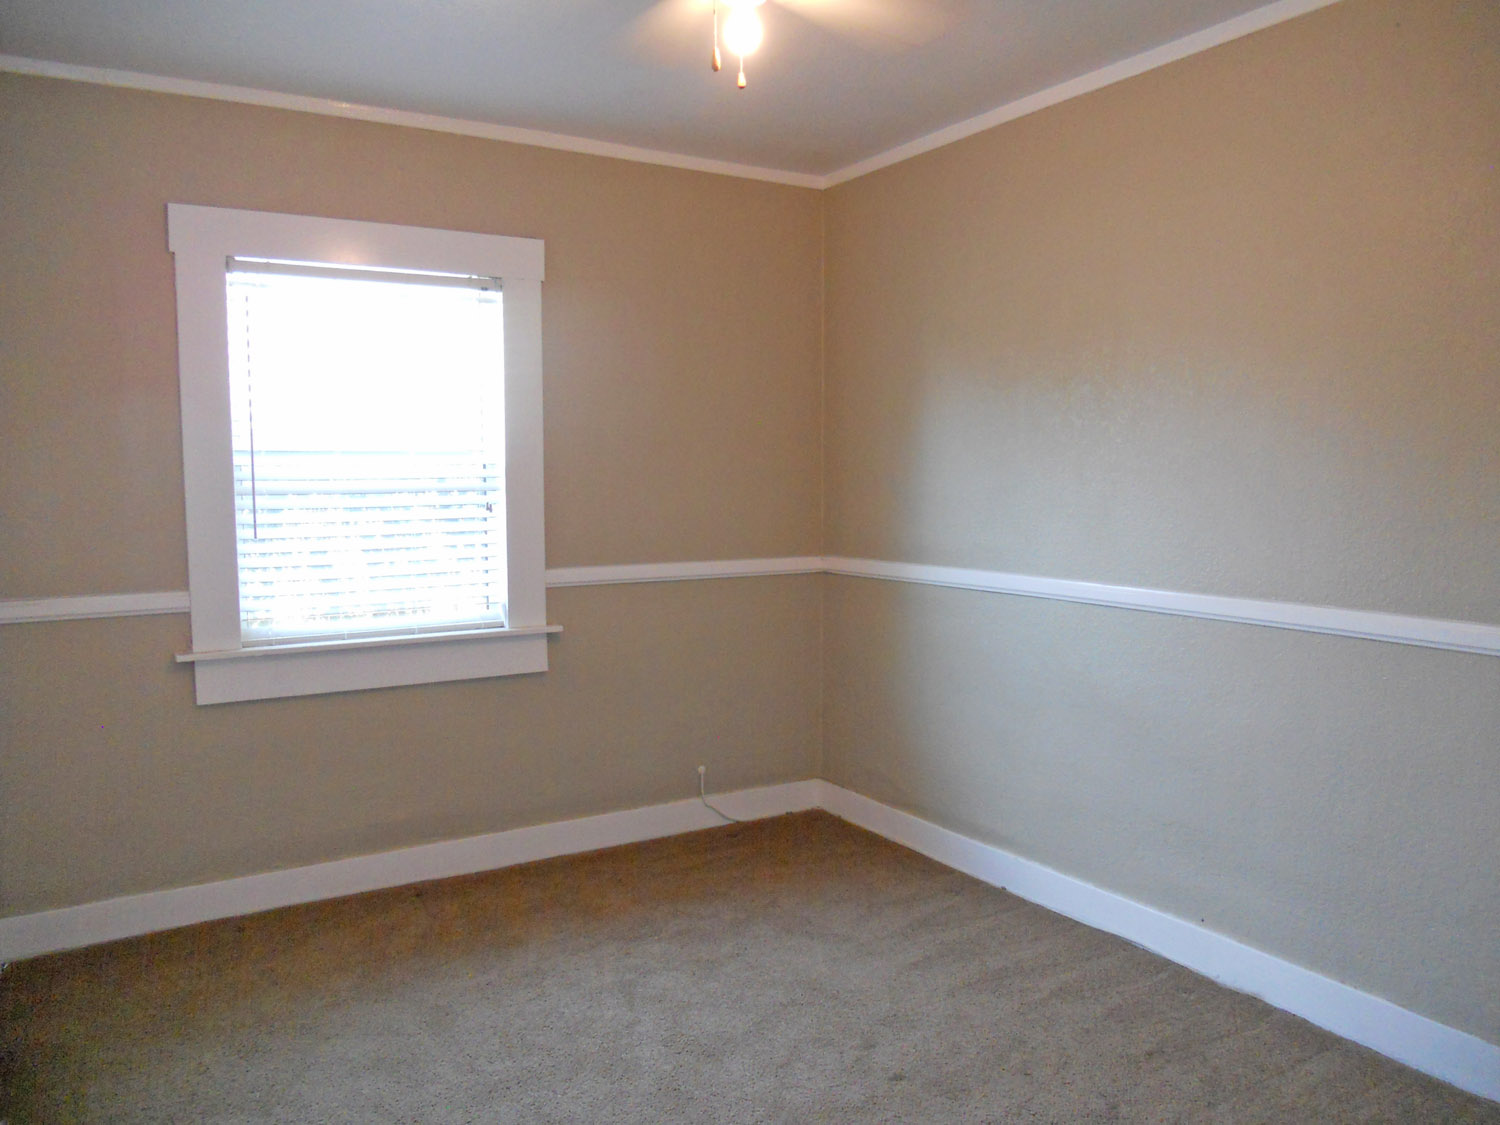 One of the bedrooms, with ceiling fan, newer double pane window, and carpeting.